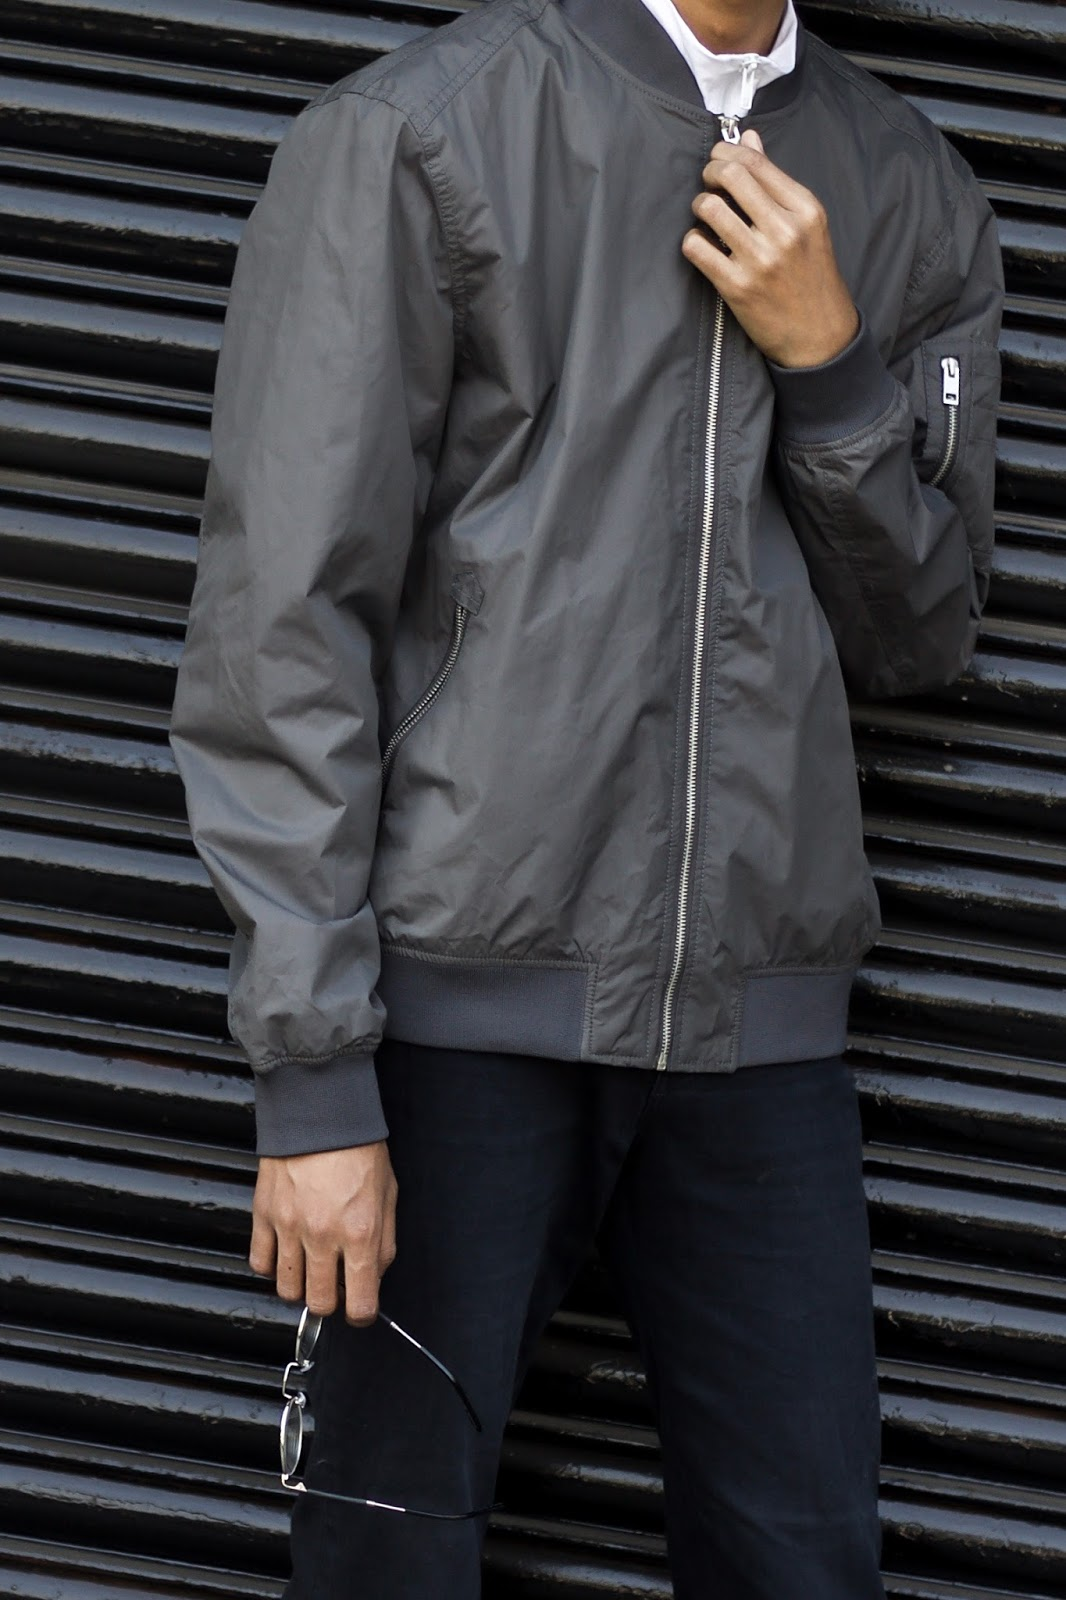 TheQuirkyMinimal by Kangkan Rabha Indian Menswear & Lifestyle blog, Sporty style, menswear, Wering New look bomber jacket, Koovs Funnel Neck Zip T-Shirt, No brand black jeans, Black Vans via jabong & Themojaclub Socks